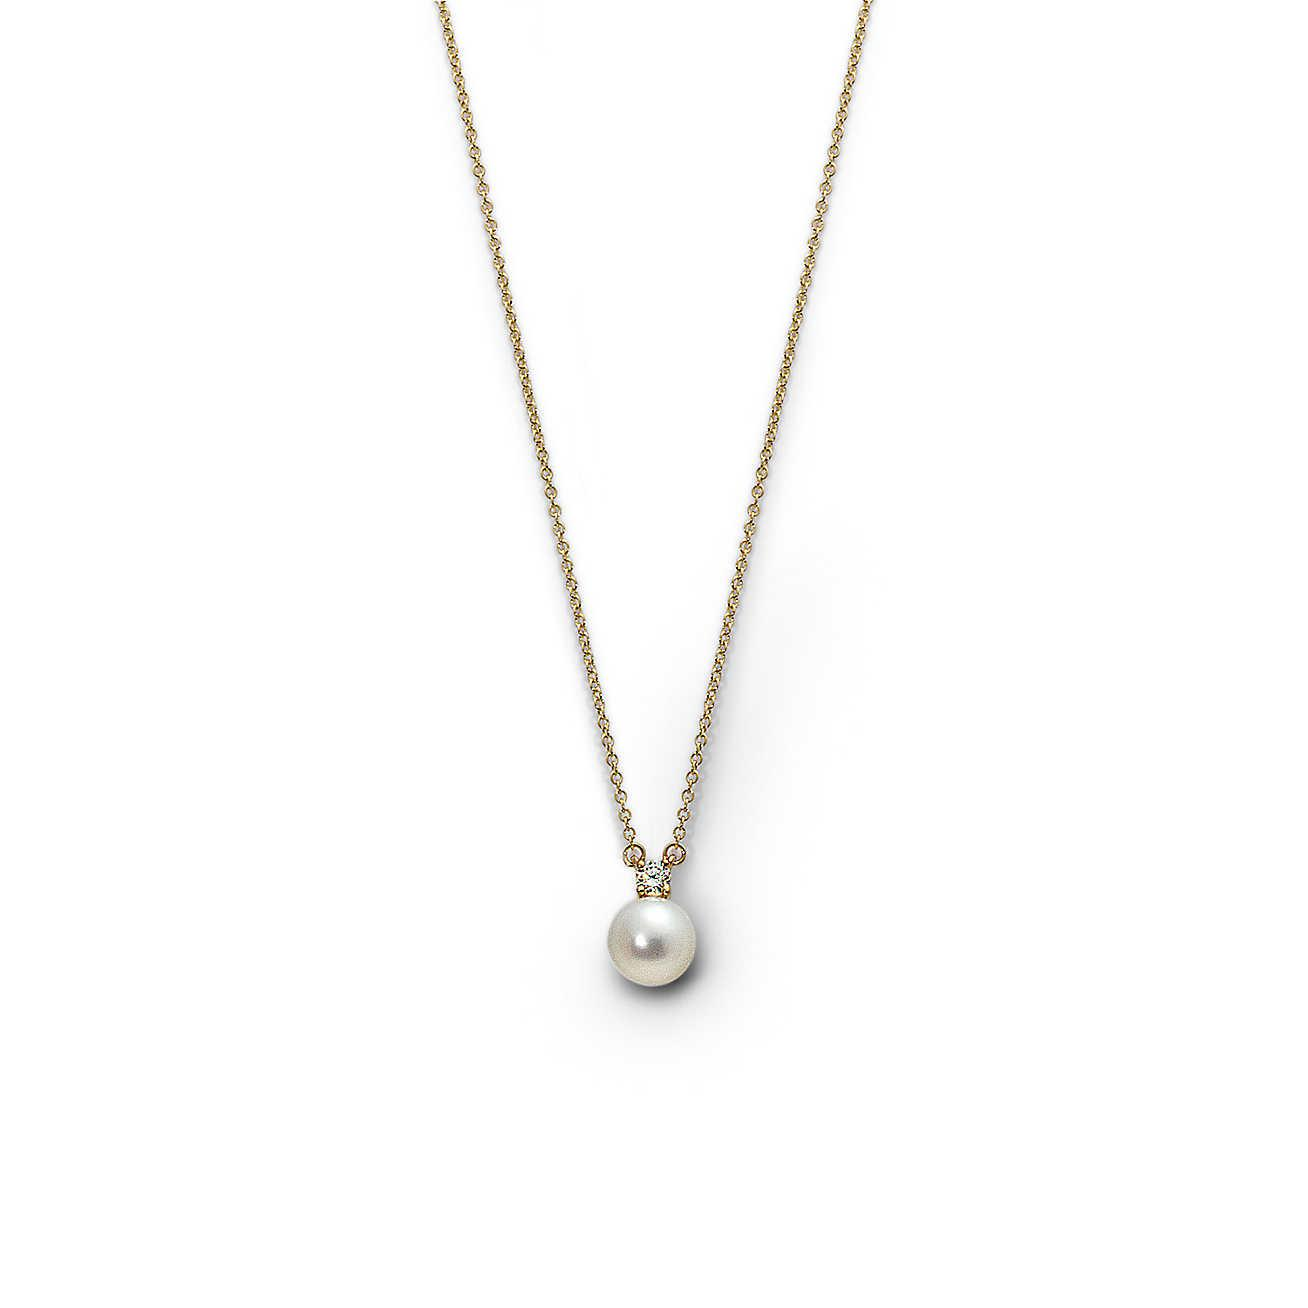 fb7de3bcc Tiffany & Co. Pendant With A Cultured Pearl And Diamond In 18k Gold ...